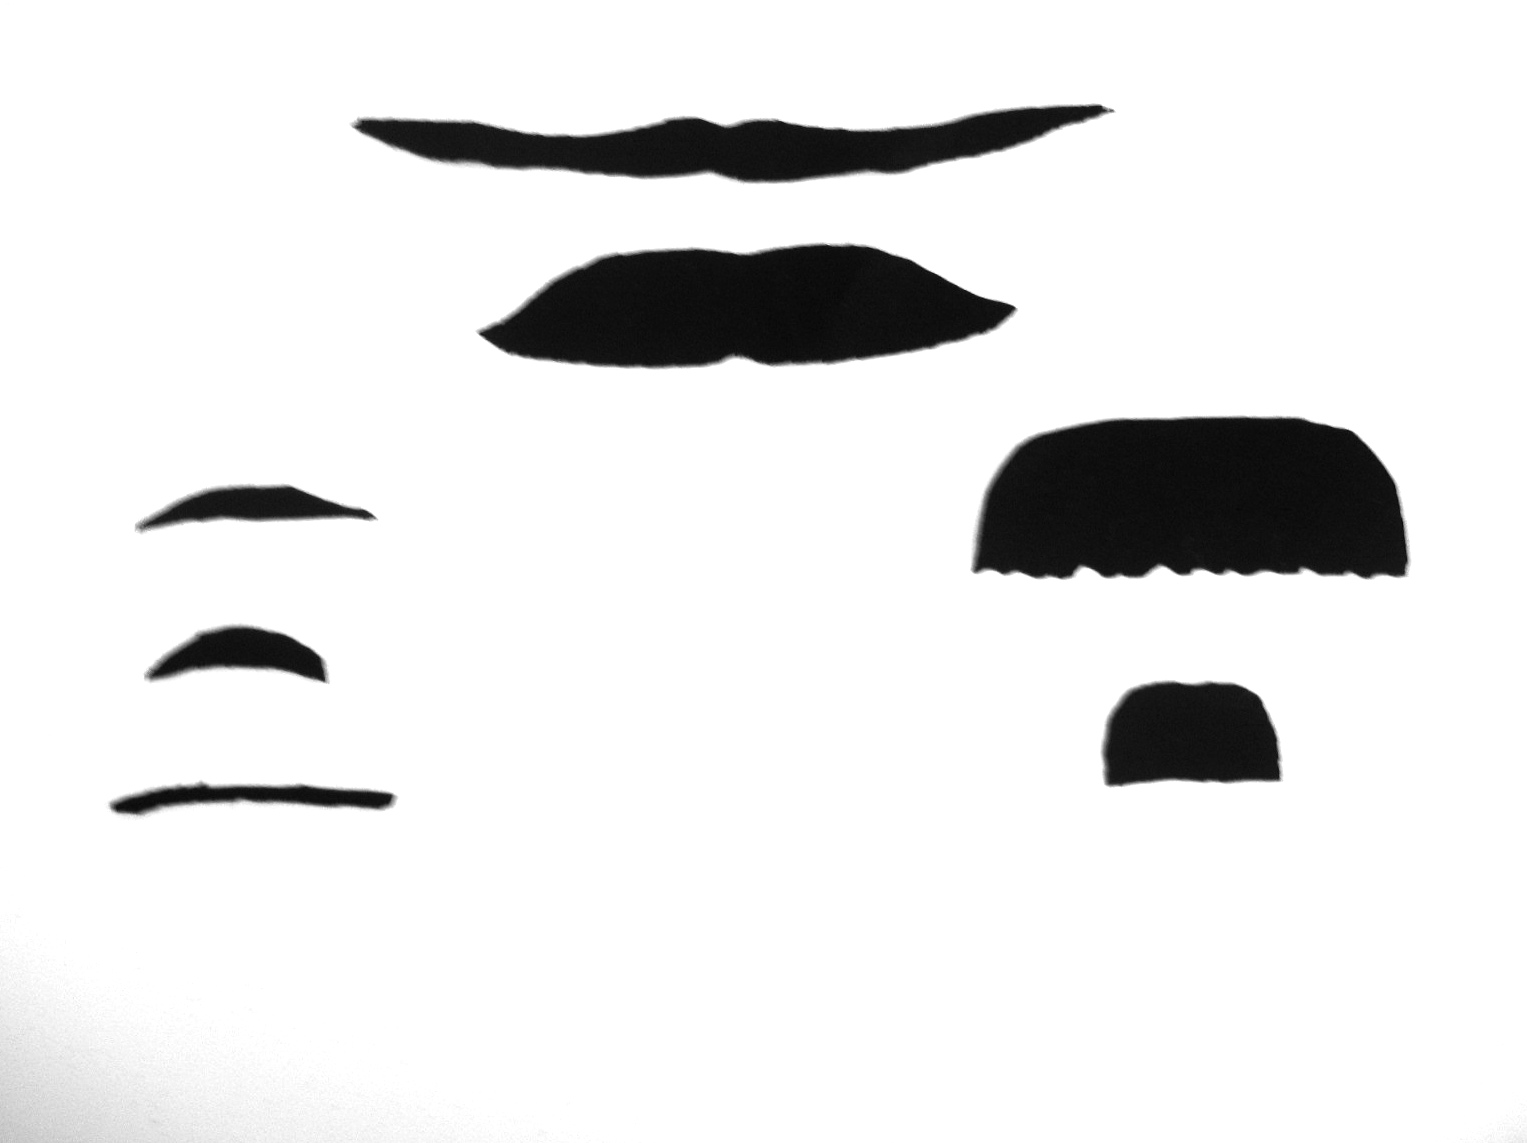 Mustache clipart toothbrush. Graphics free download best